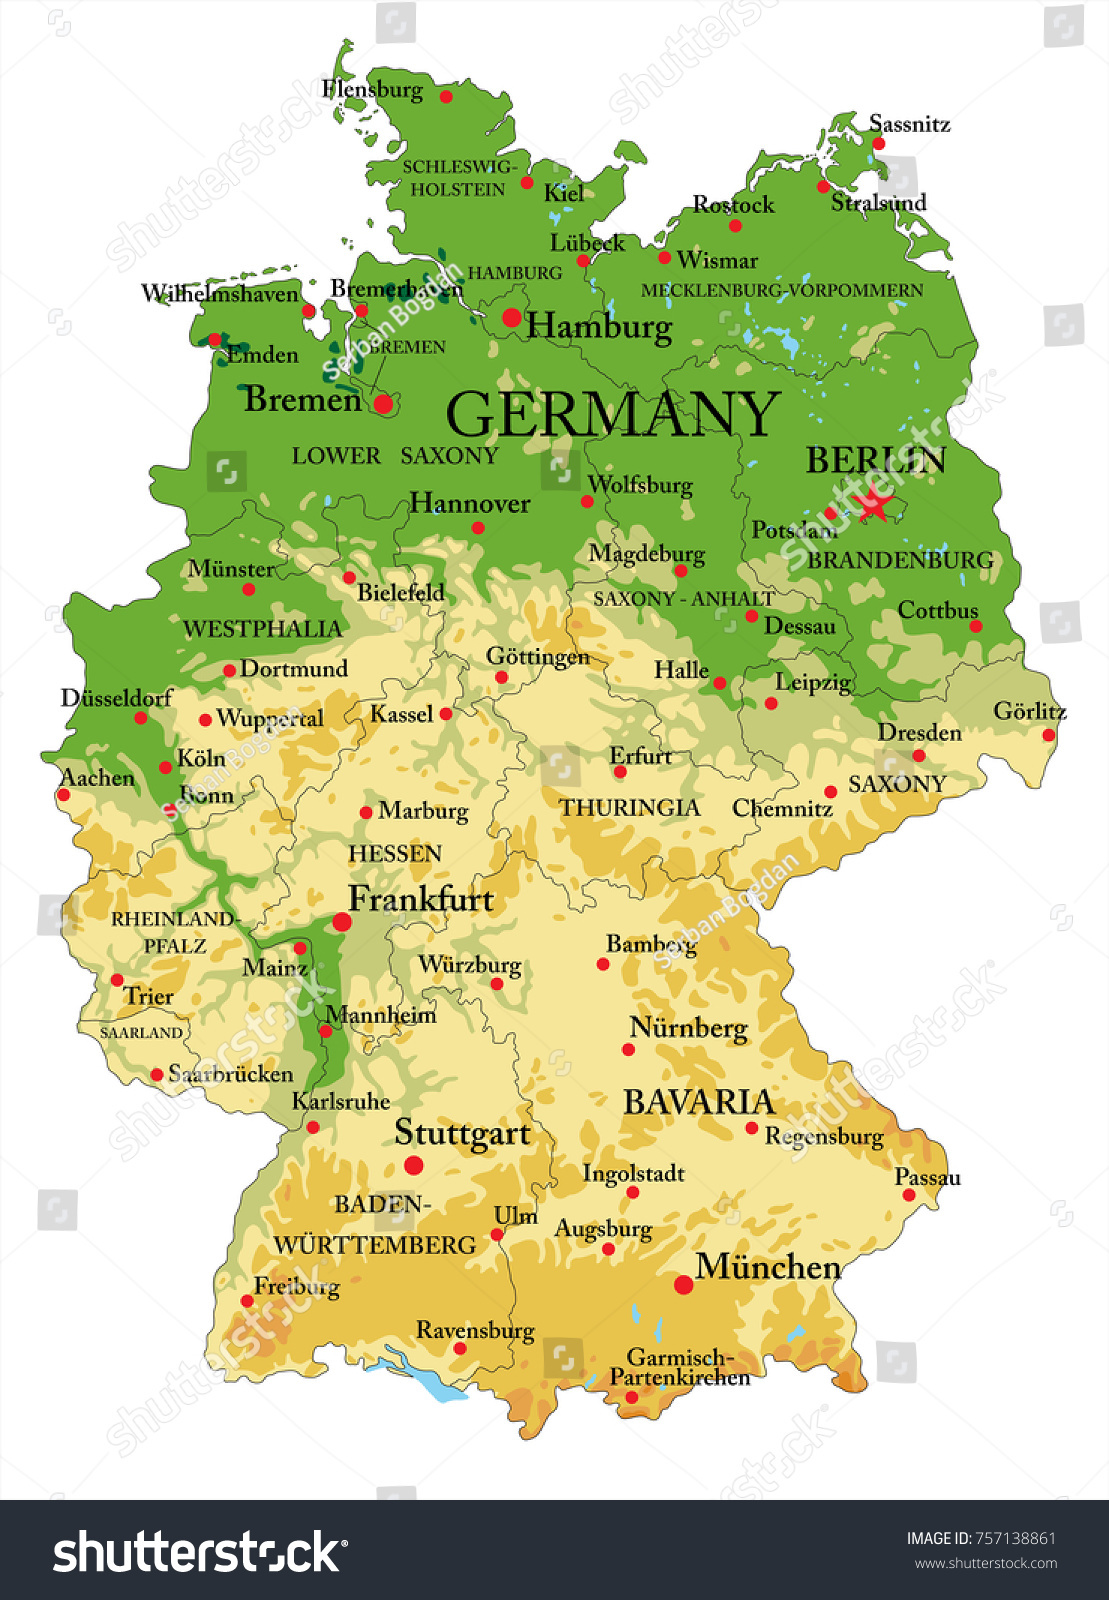 Germany Physical Map Stock Photo Photo Vector Illustration